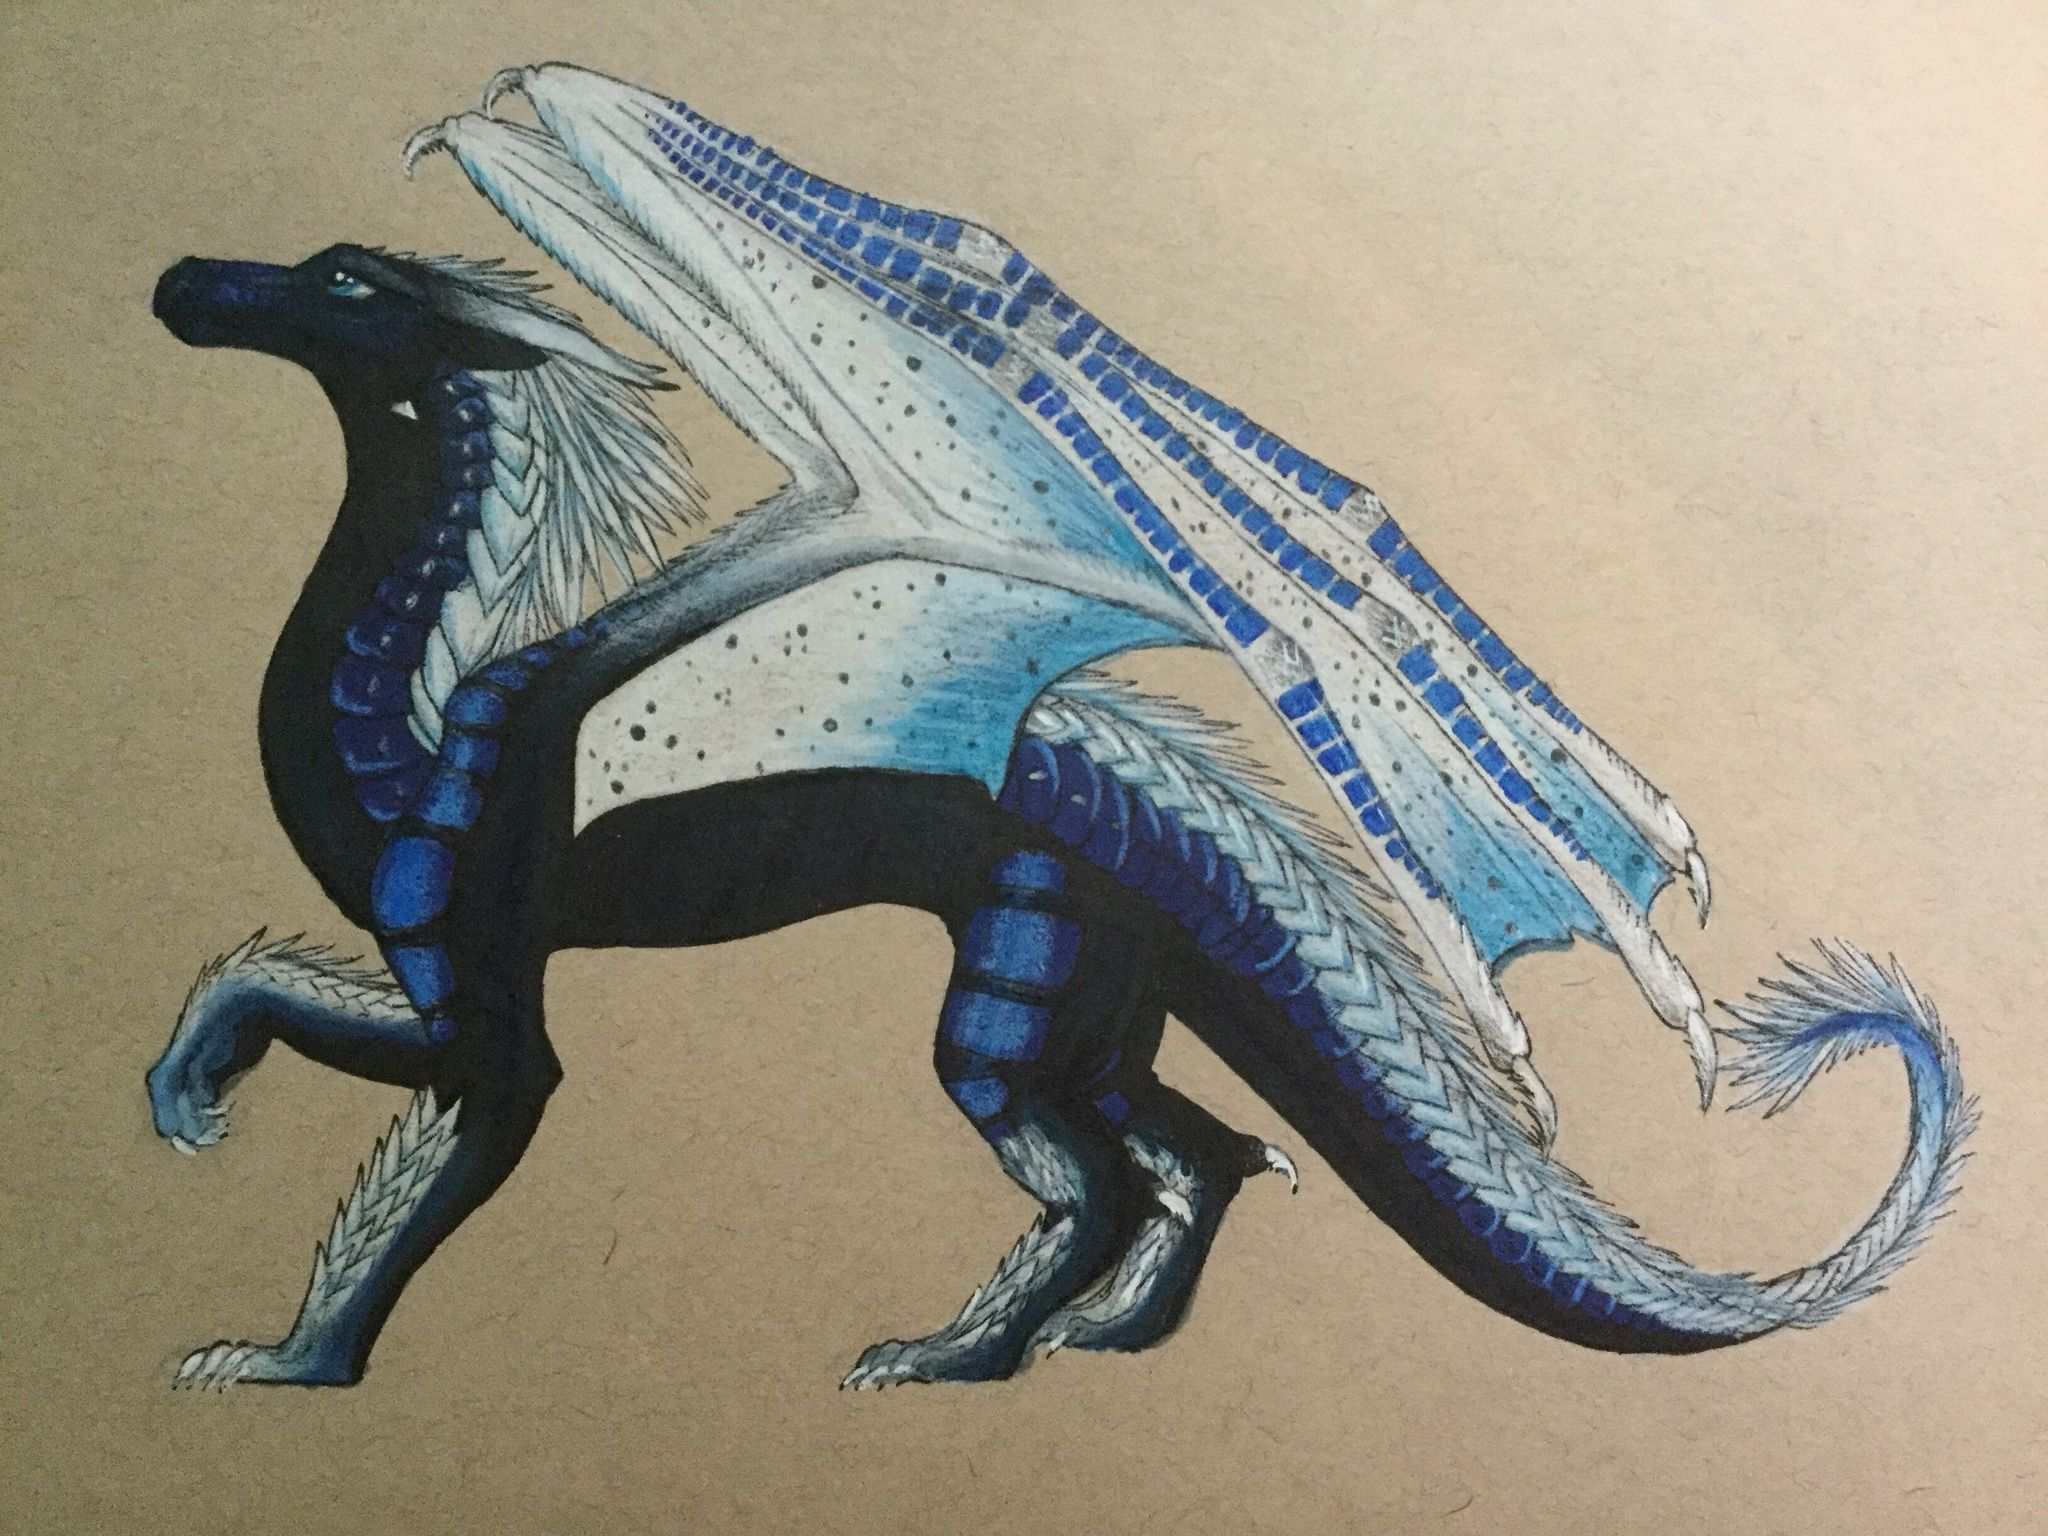 Whiteout Wings of fire fan art Art by MJ